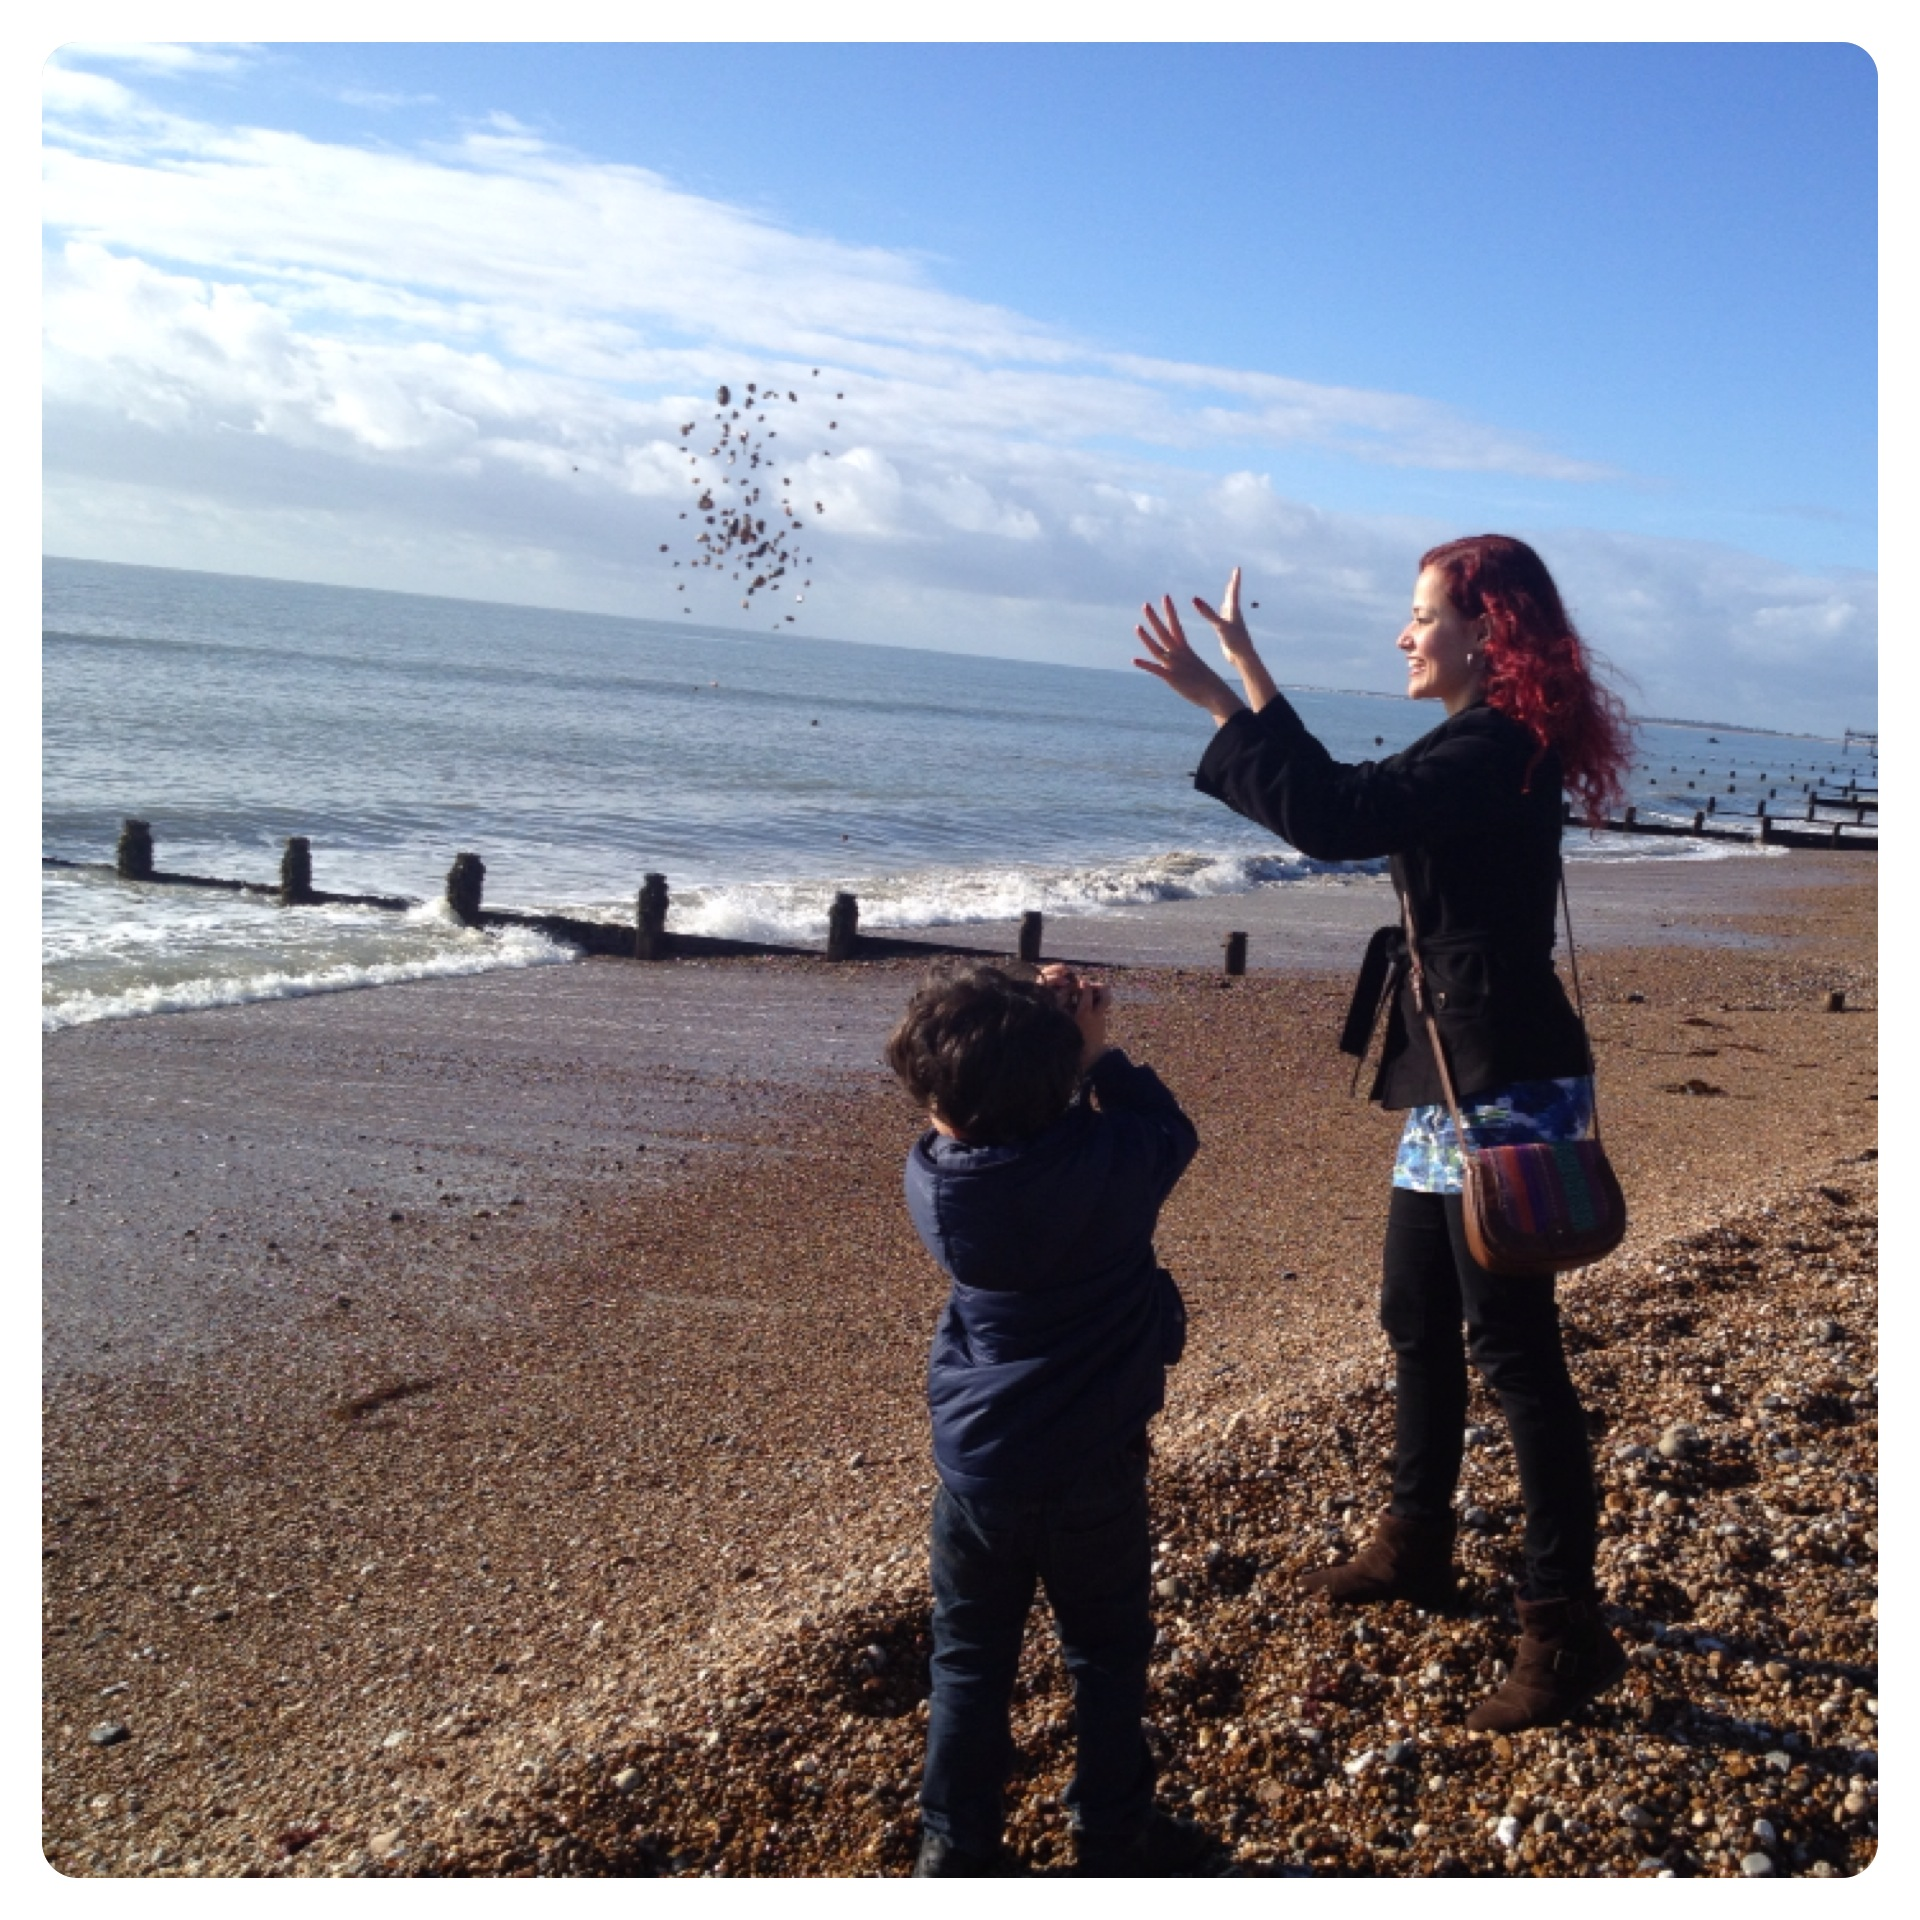 Throwing Stones at the Sea